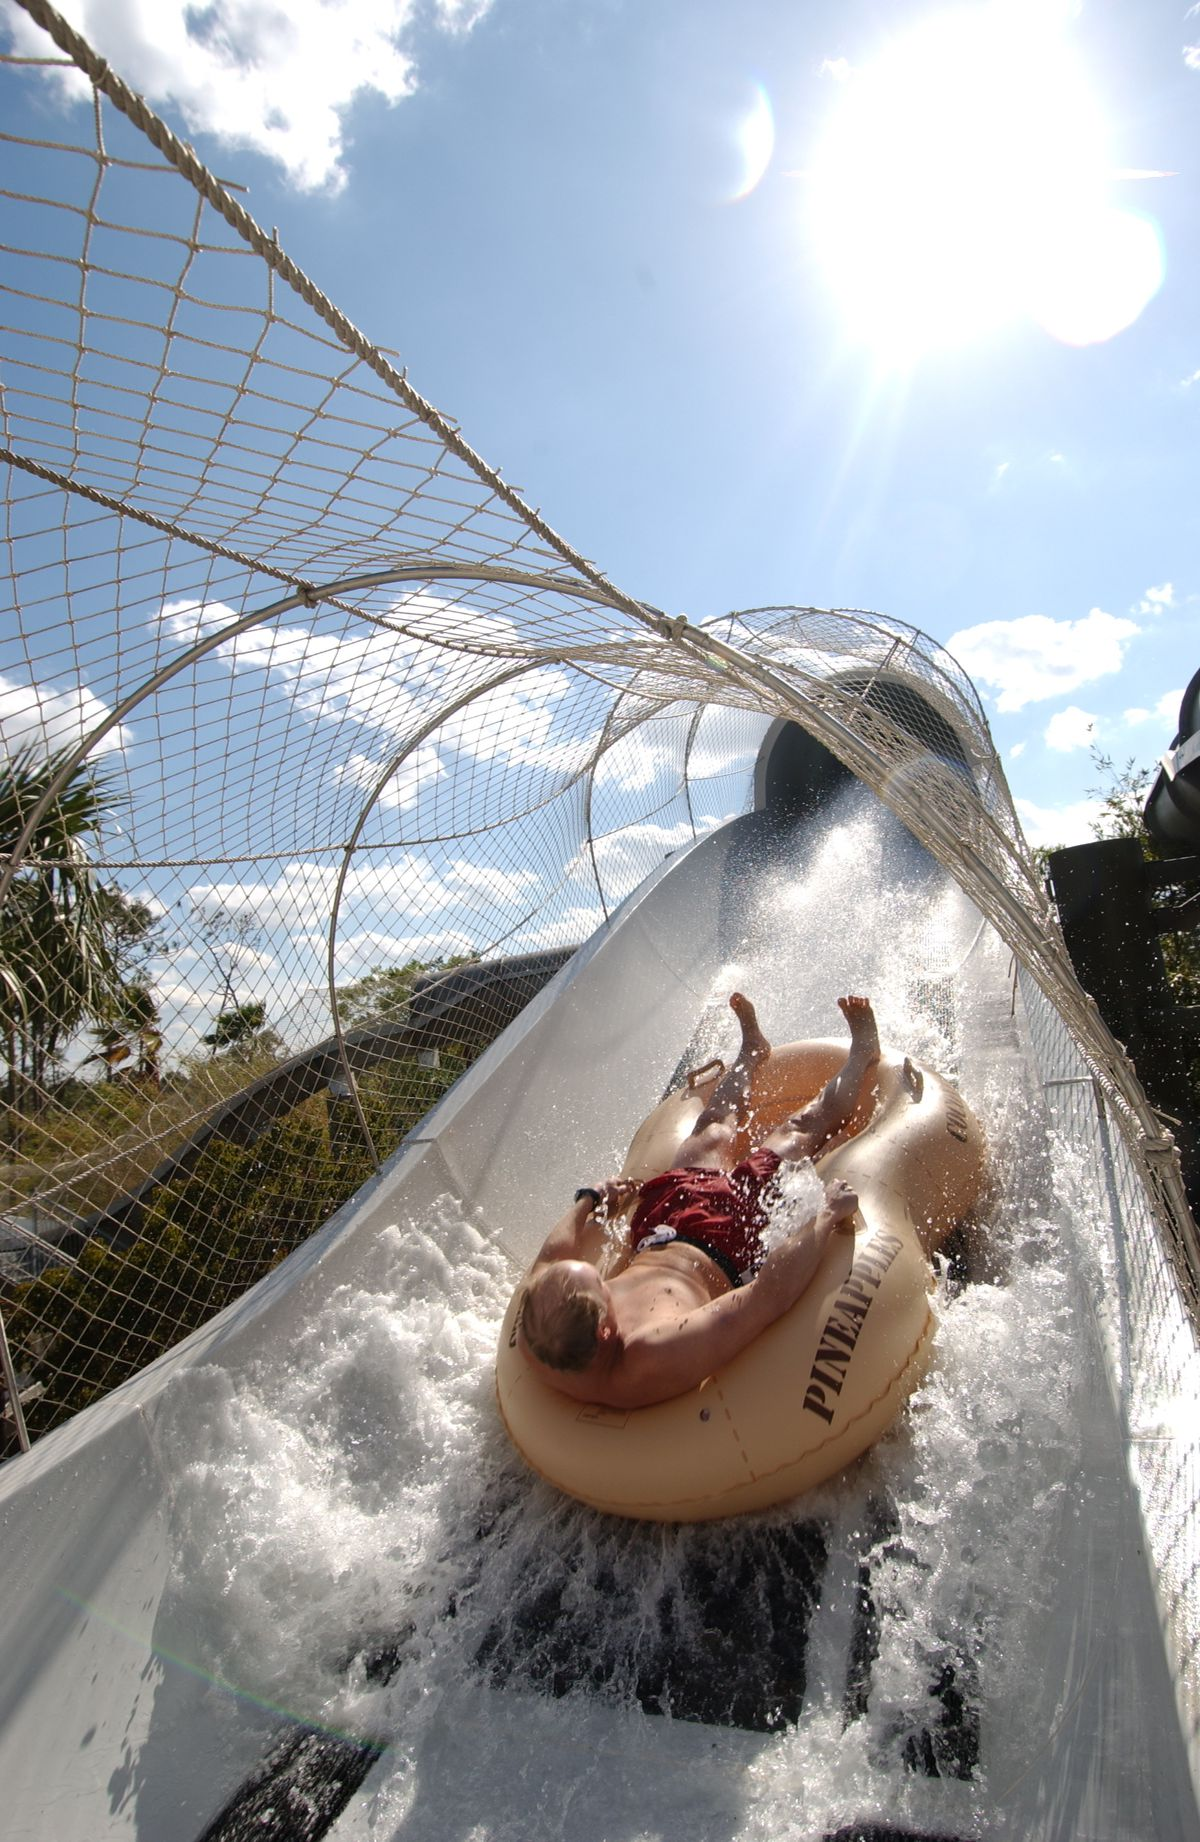 Walt Disney World guests are propelled to speeds reaching 30 feet per second on Crush 'n' Gusher, a new water coaster thrill ride at Disney's Typhoon Lagoon in Lake Buena Vista, Fla. (Disney/Diana Zalucky, Photographer)